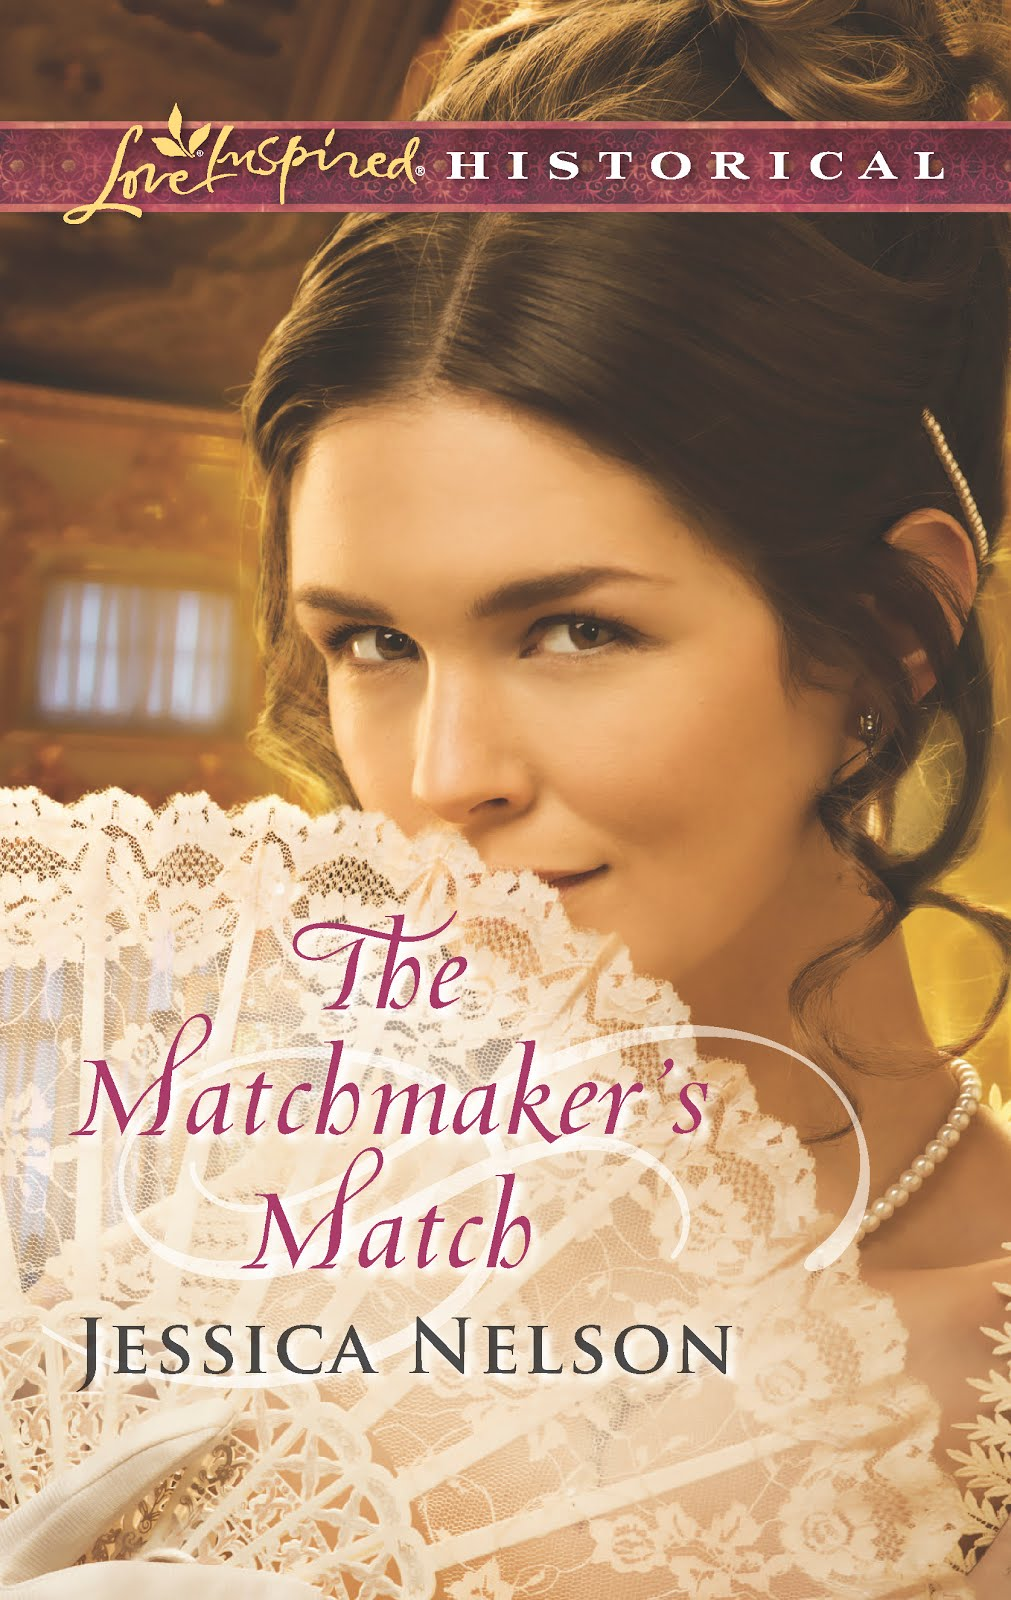 The MatchMaker's Match